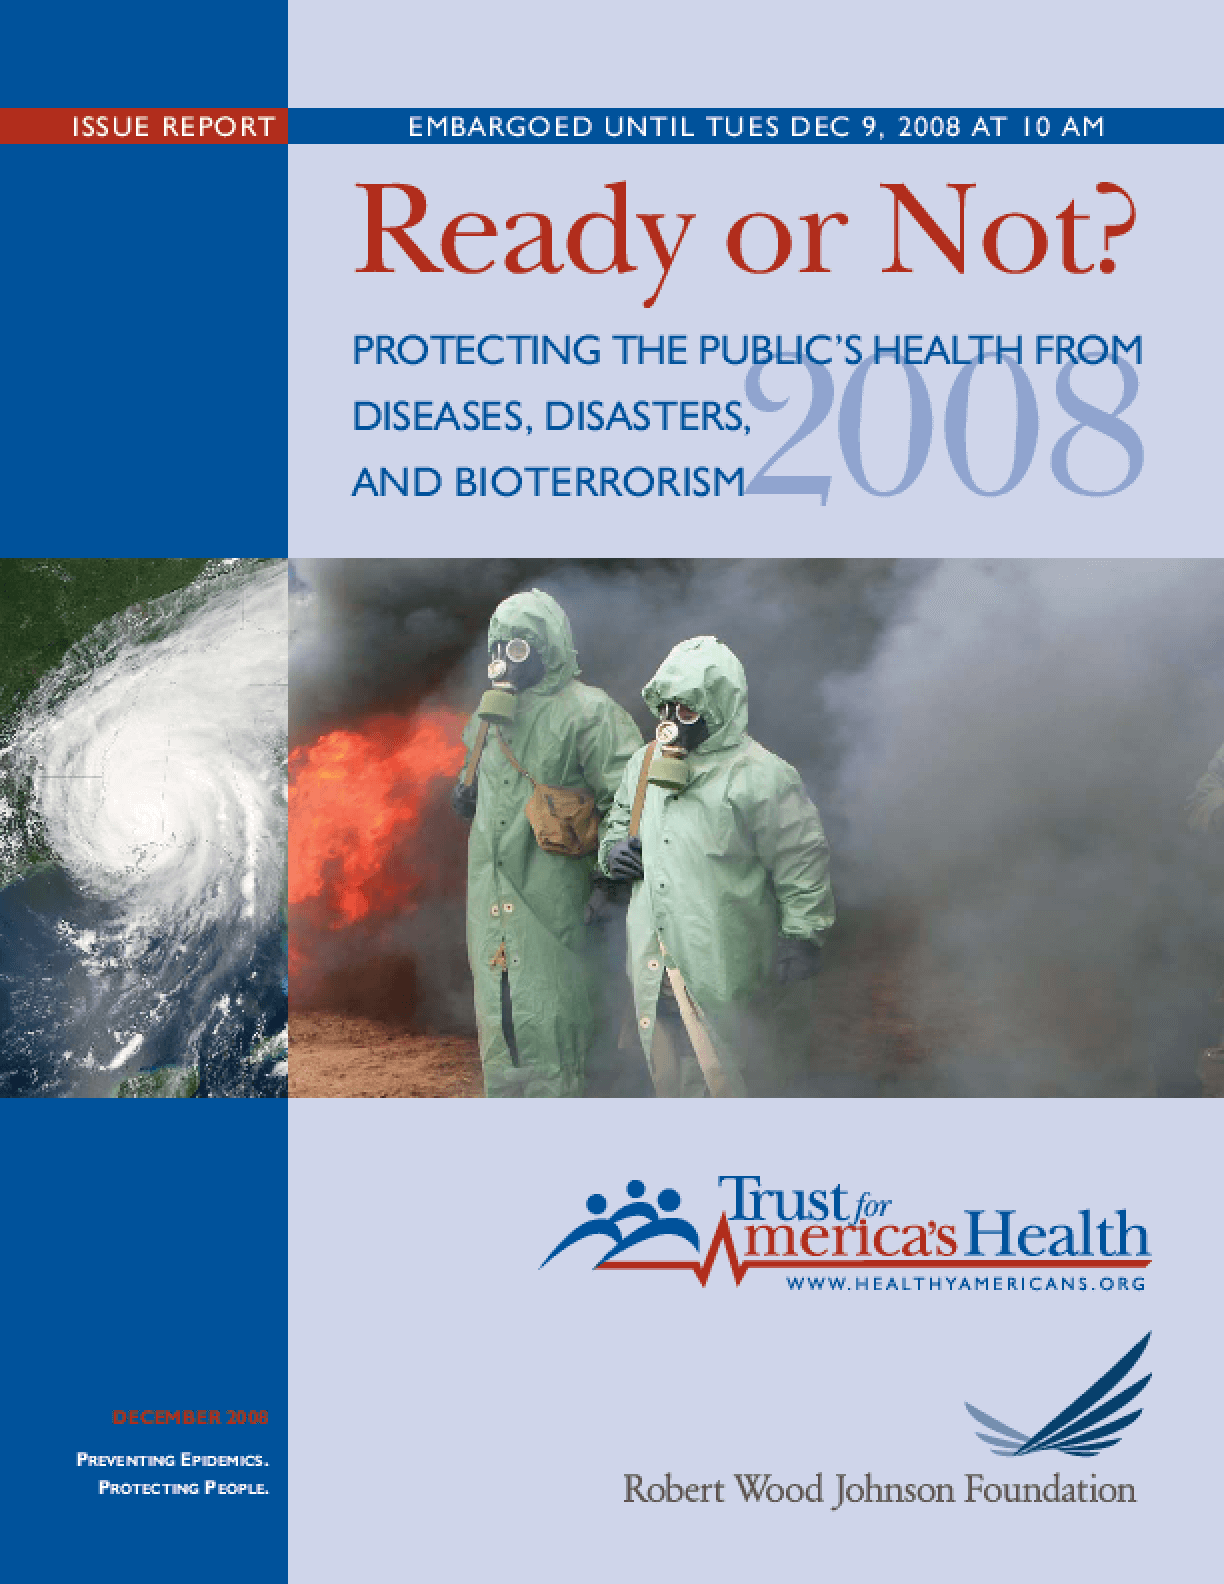 Ready or Not? Protecting the Public's Health From Diseases, Disasters, and Bioterrorism, 2008